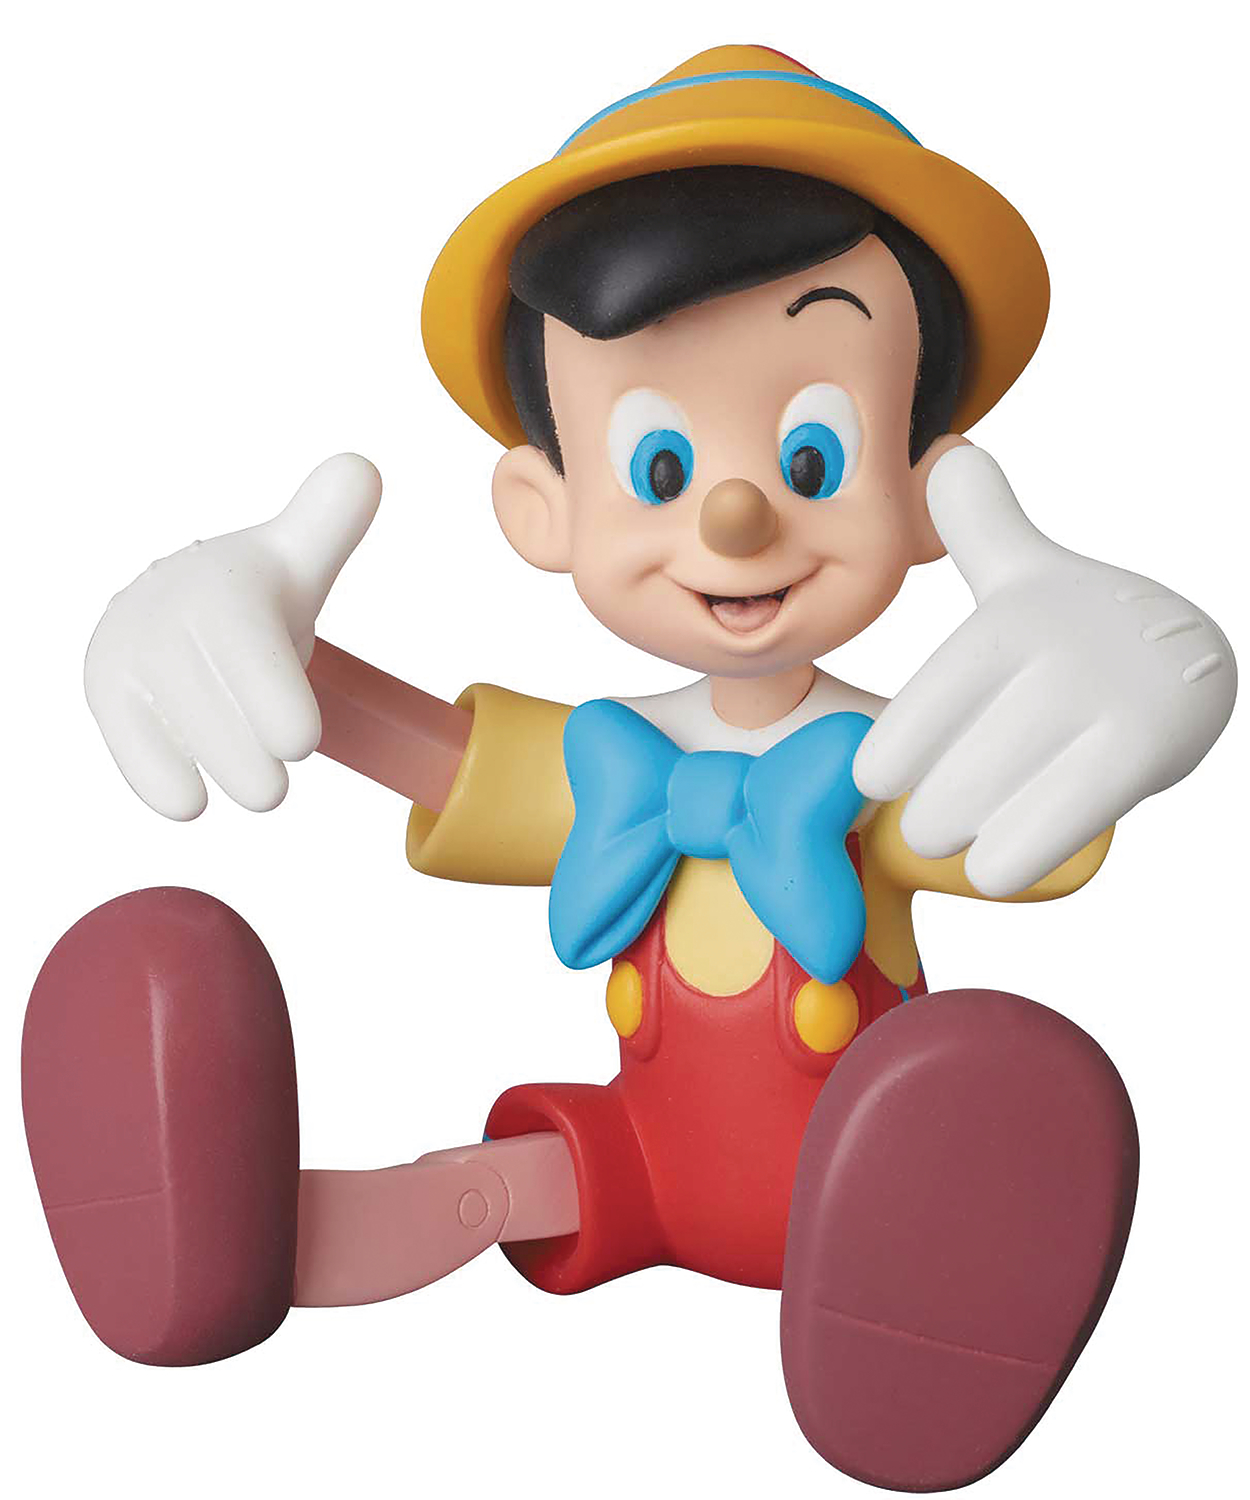 Pinocchio clipart disney character FIG DISNEY SERIES PINOCCHIO FIG